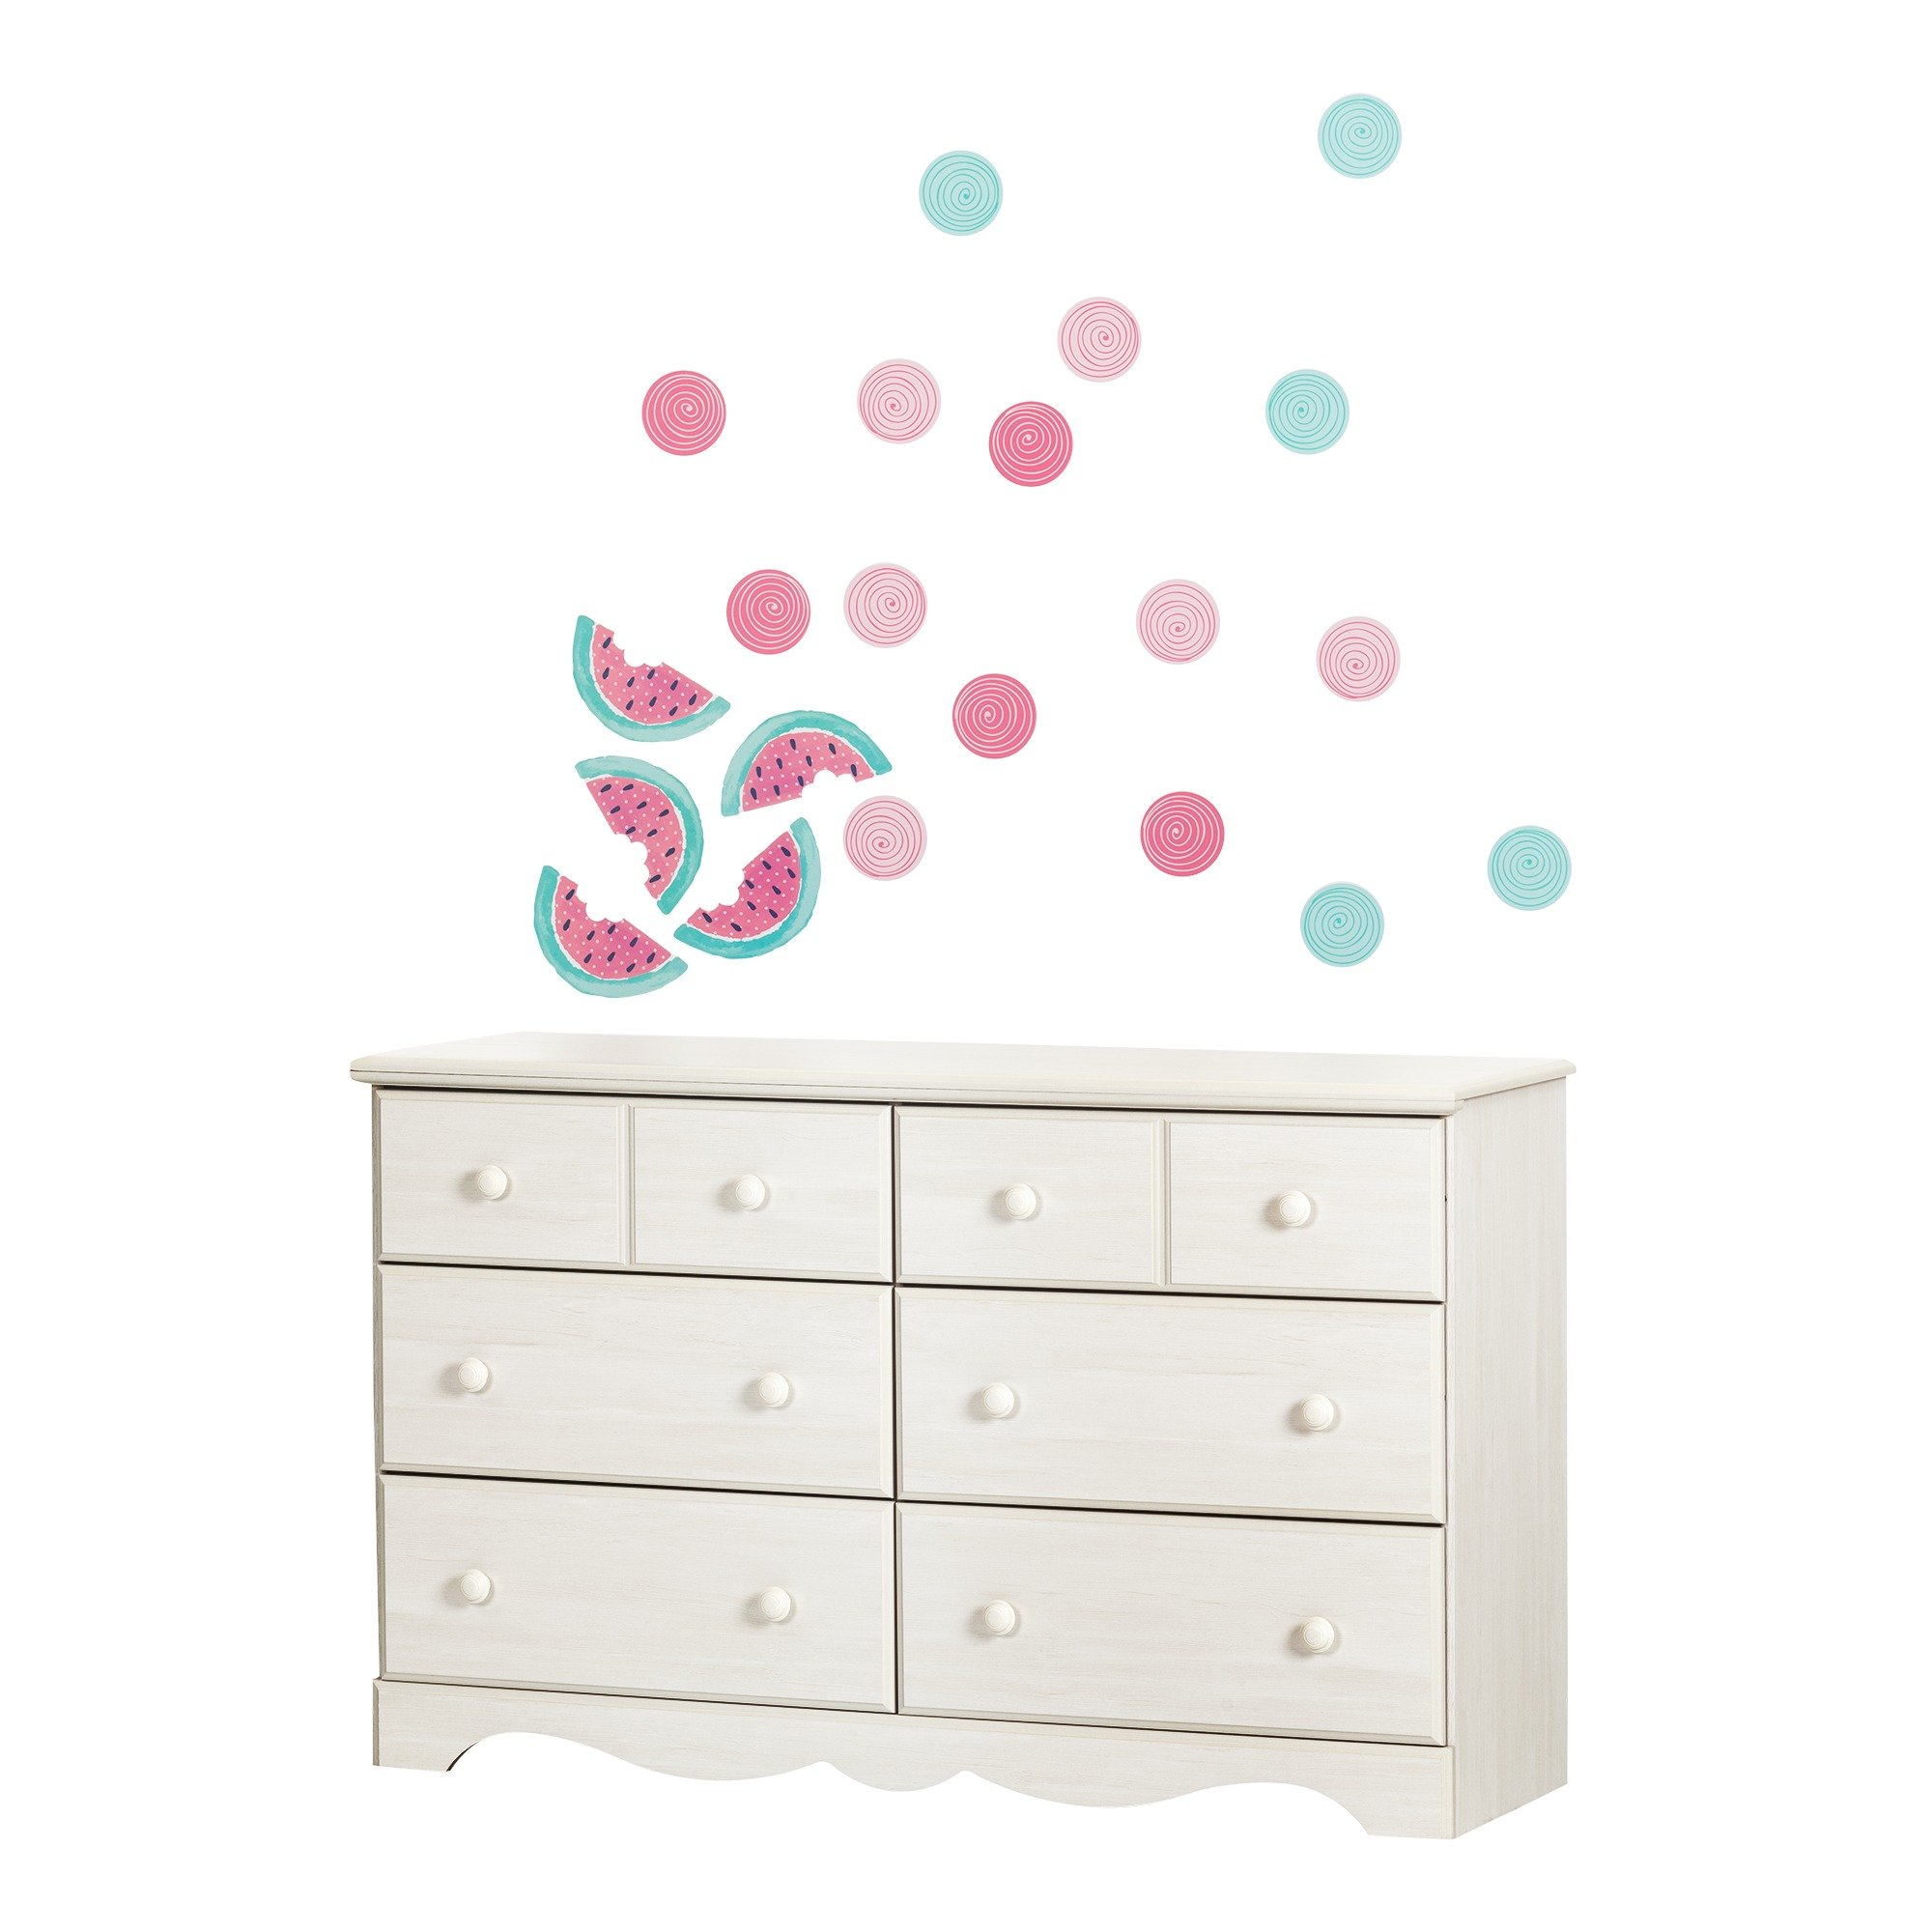 South Shore Summer Breeze Pure White and Pink 6-Drawer Double Dresser with Watermelons and Dots Wall Decals